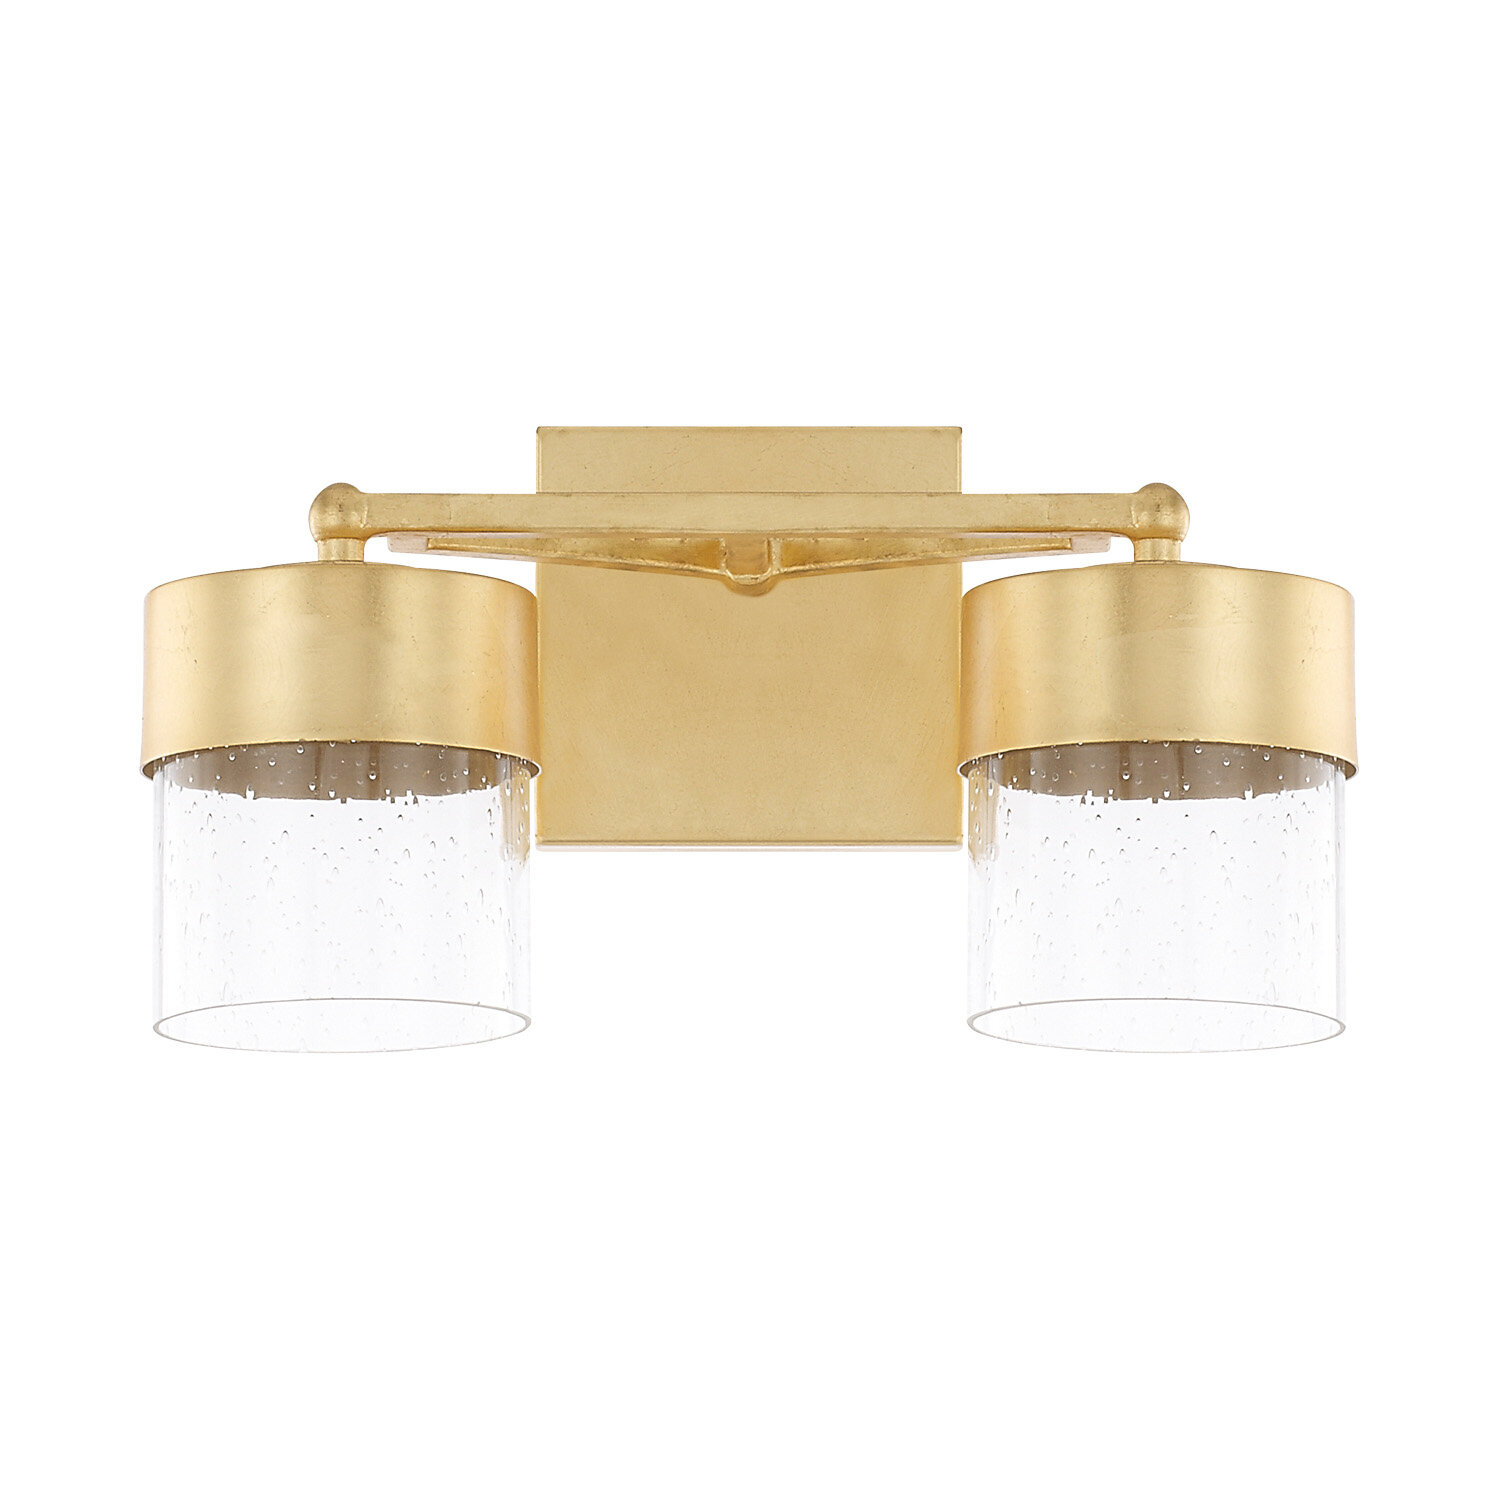 Ozella 2 light vanity light with clear seeded glass